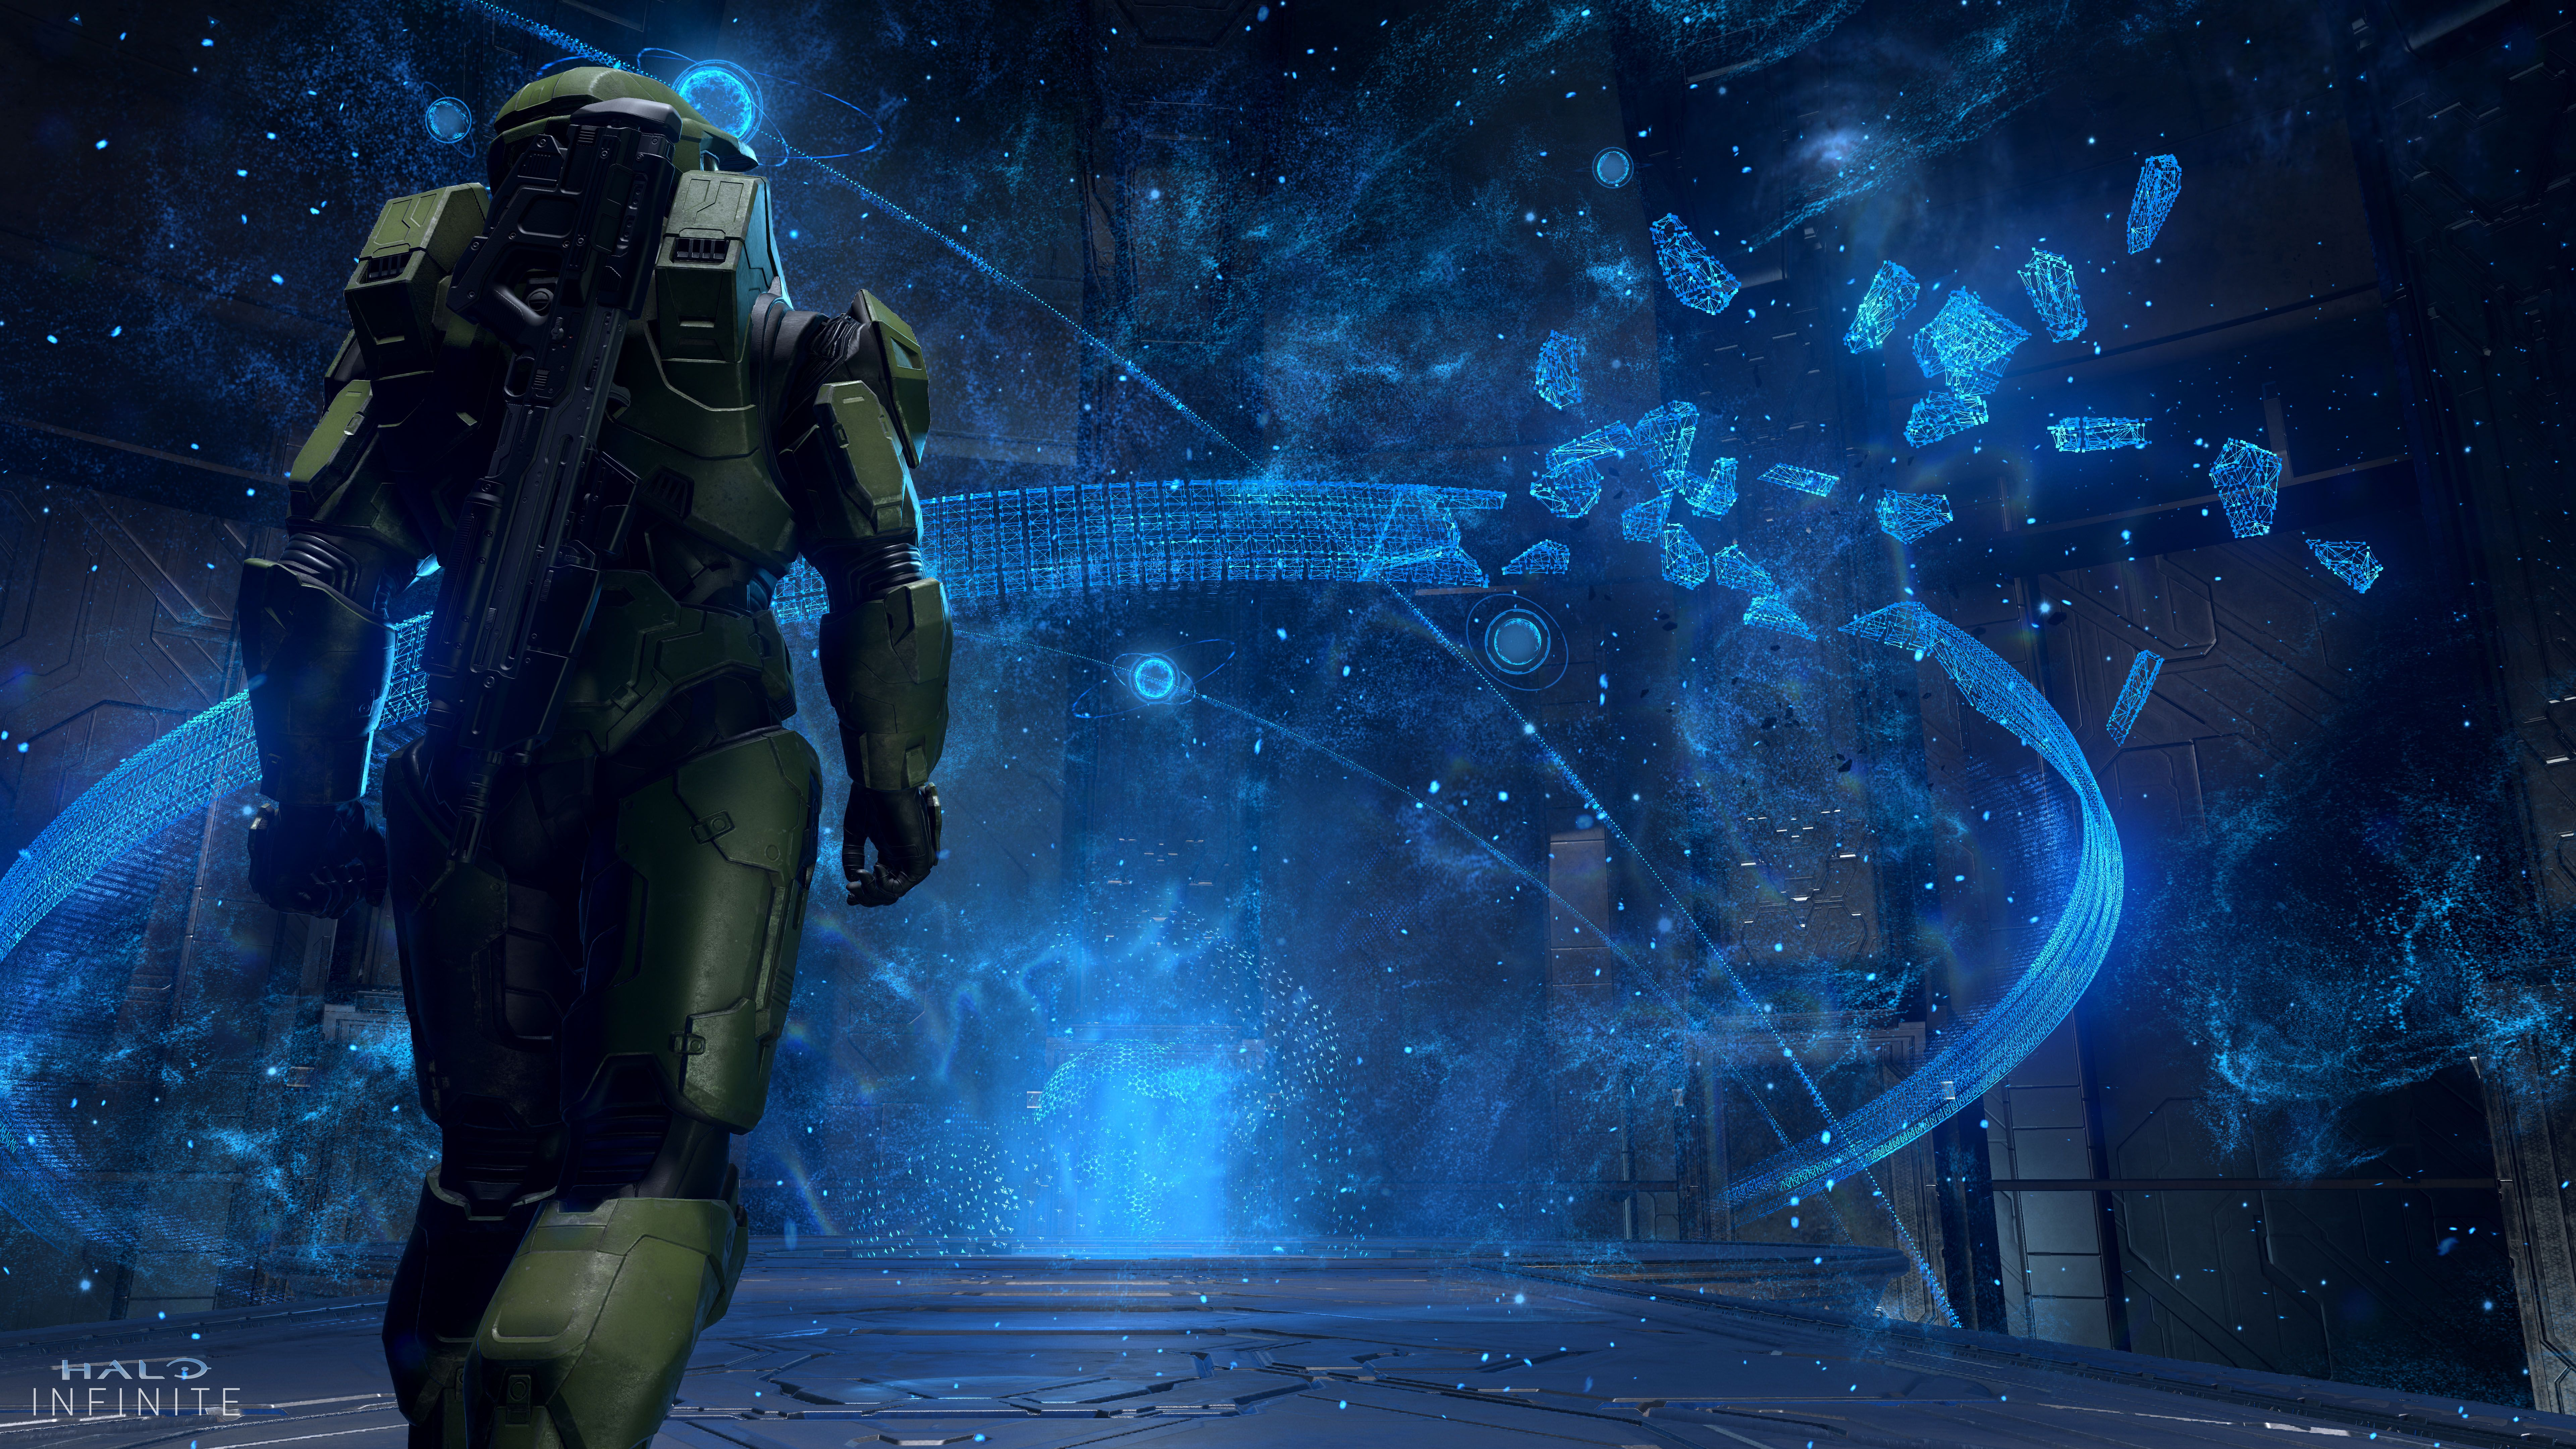 Wallpapers Darkness Pc Game Space Master Chief Adventure Game